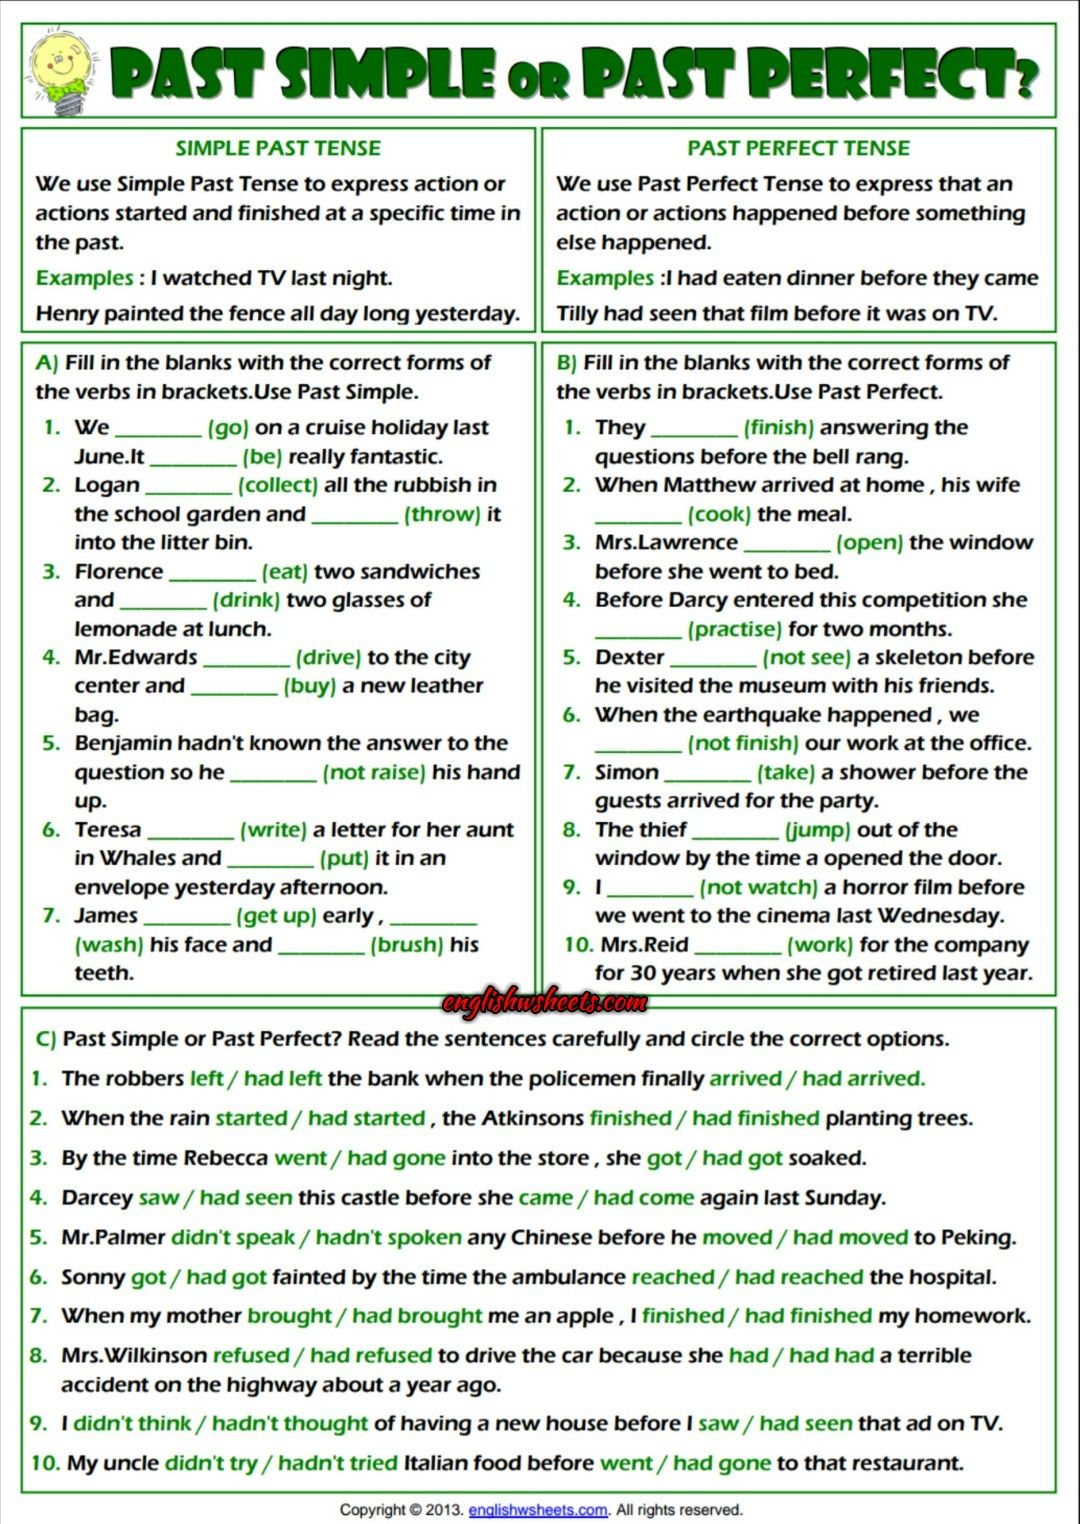 Simple Past Or Past Perfect Esl Exercises Worksheet